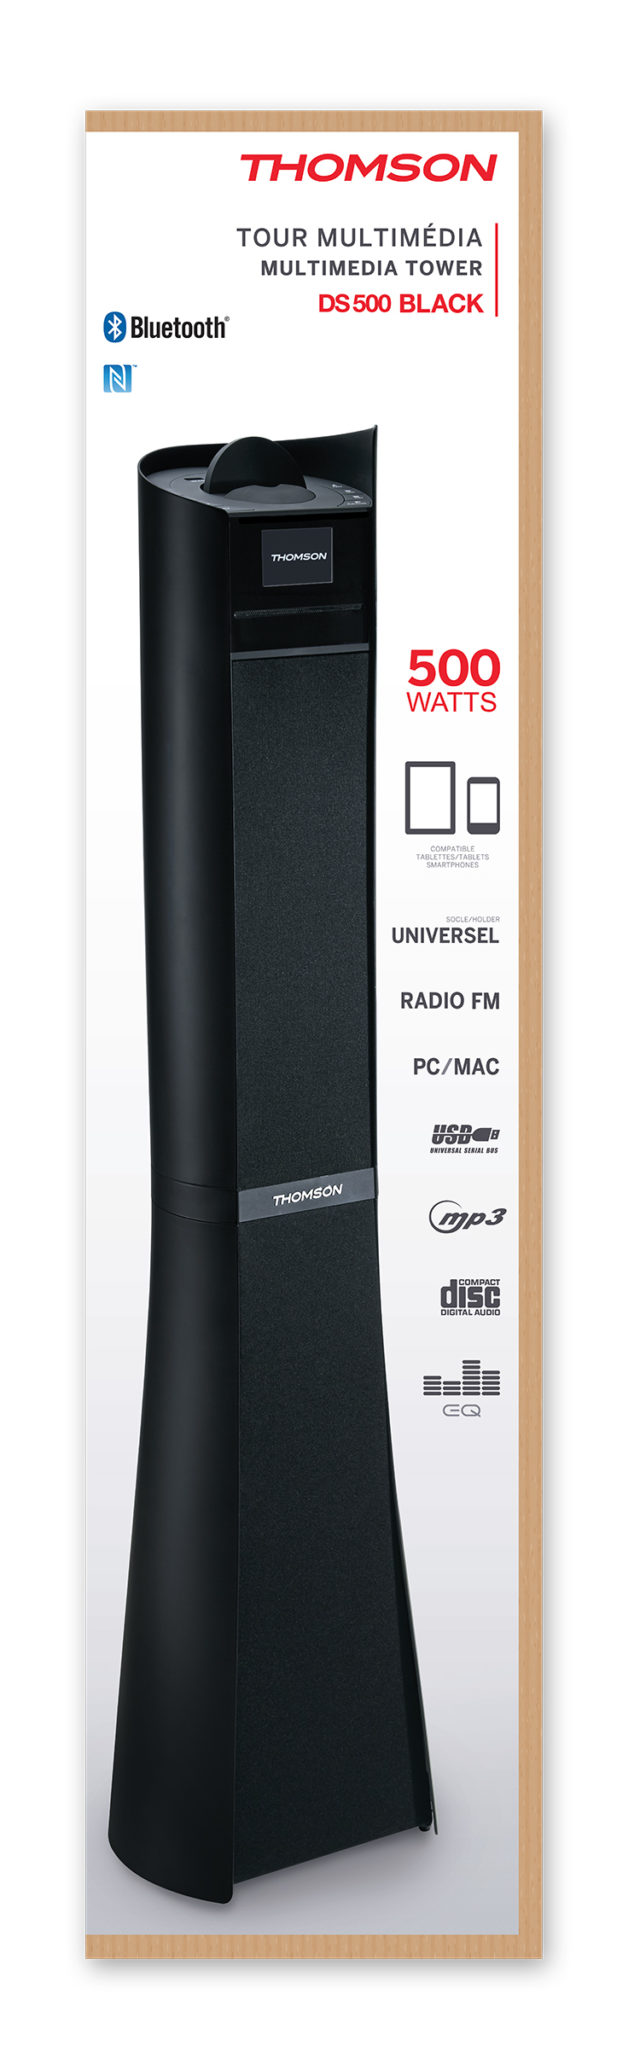 Thomson Sound Tower DS500 - Packshot